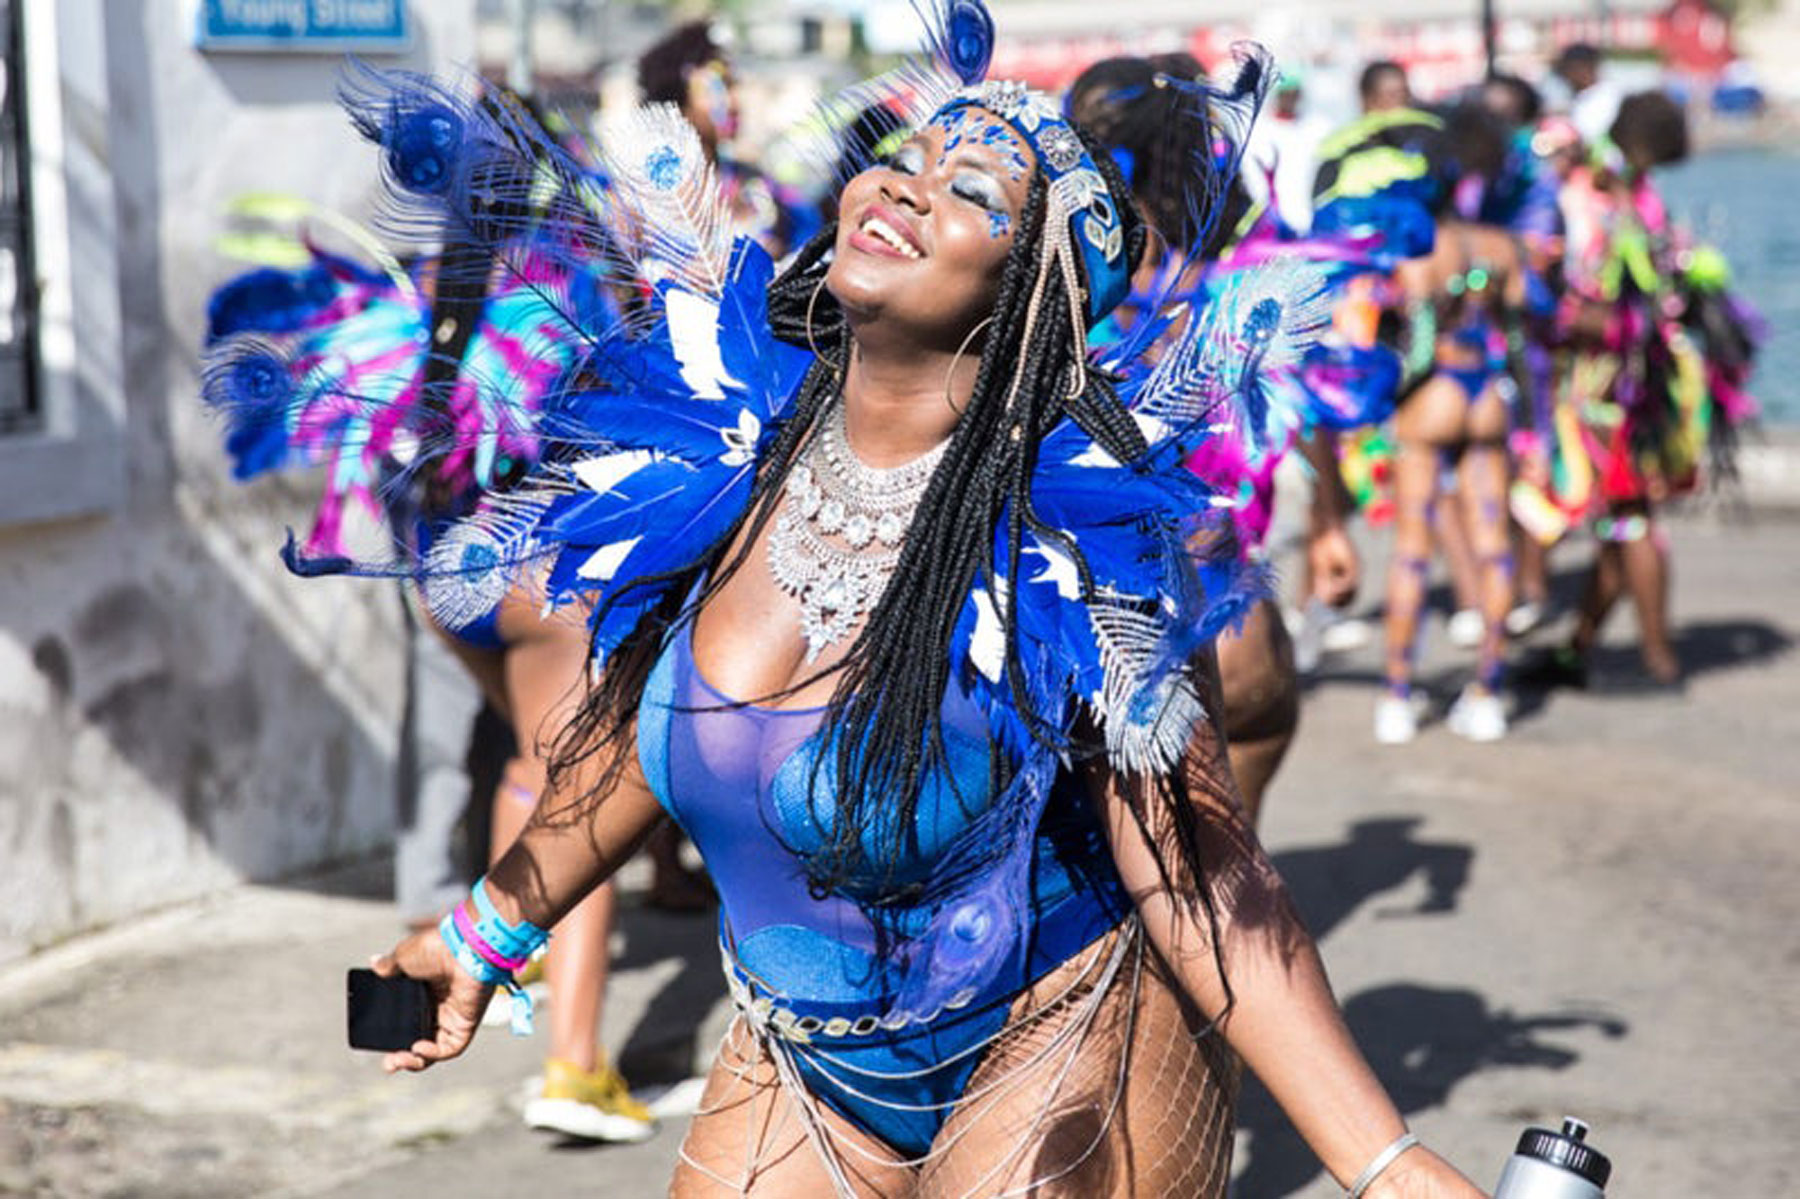 Woman in blue carnival outfit dancing